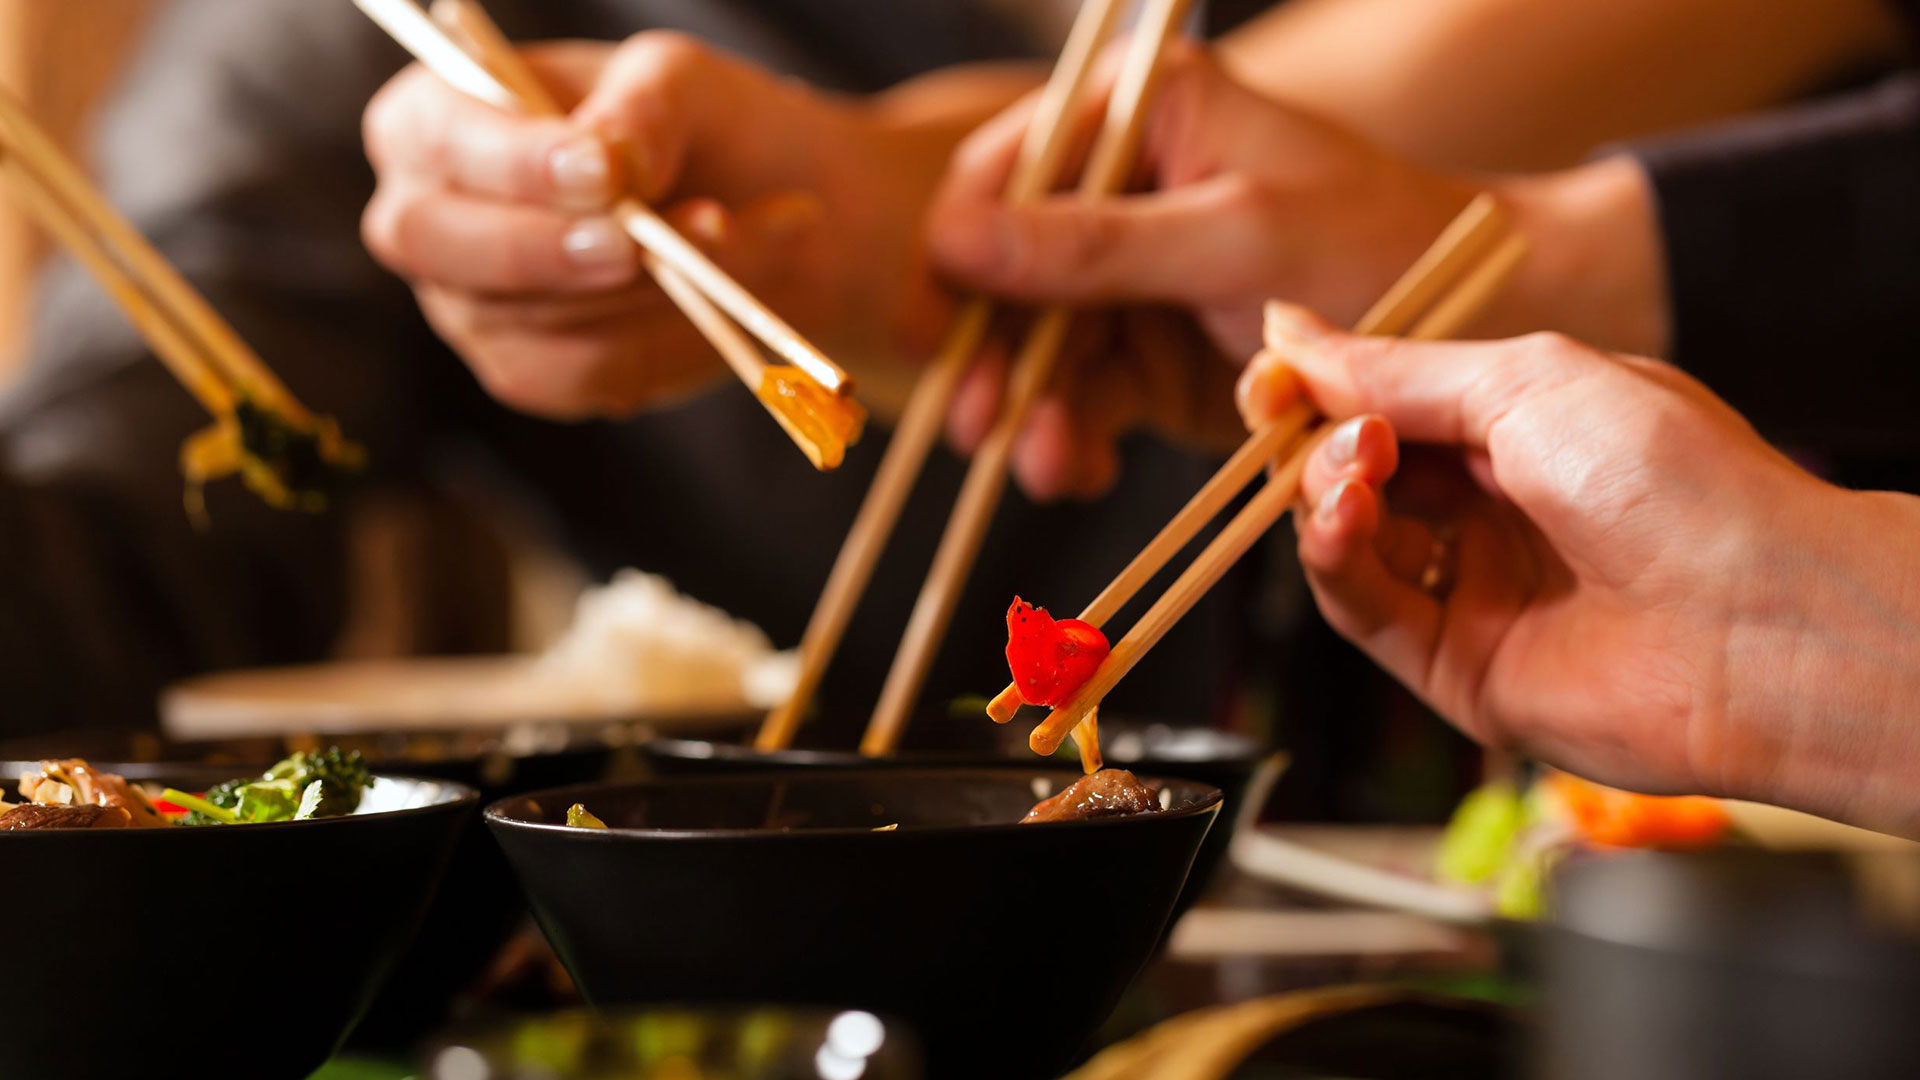 How Chopsticks Can Make You Lose Weight